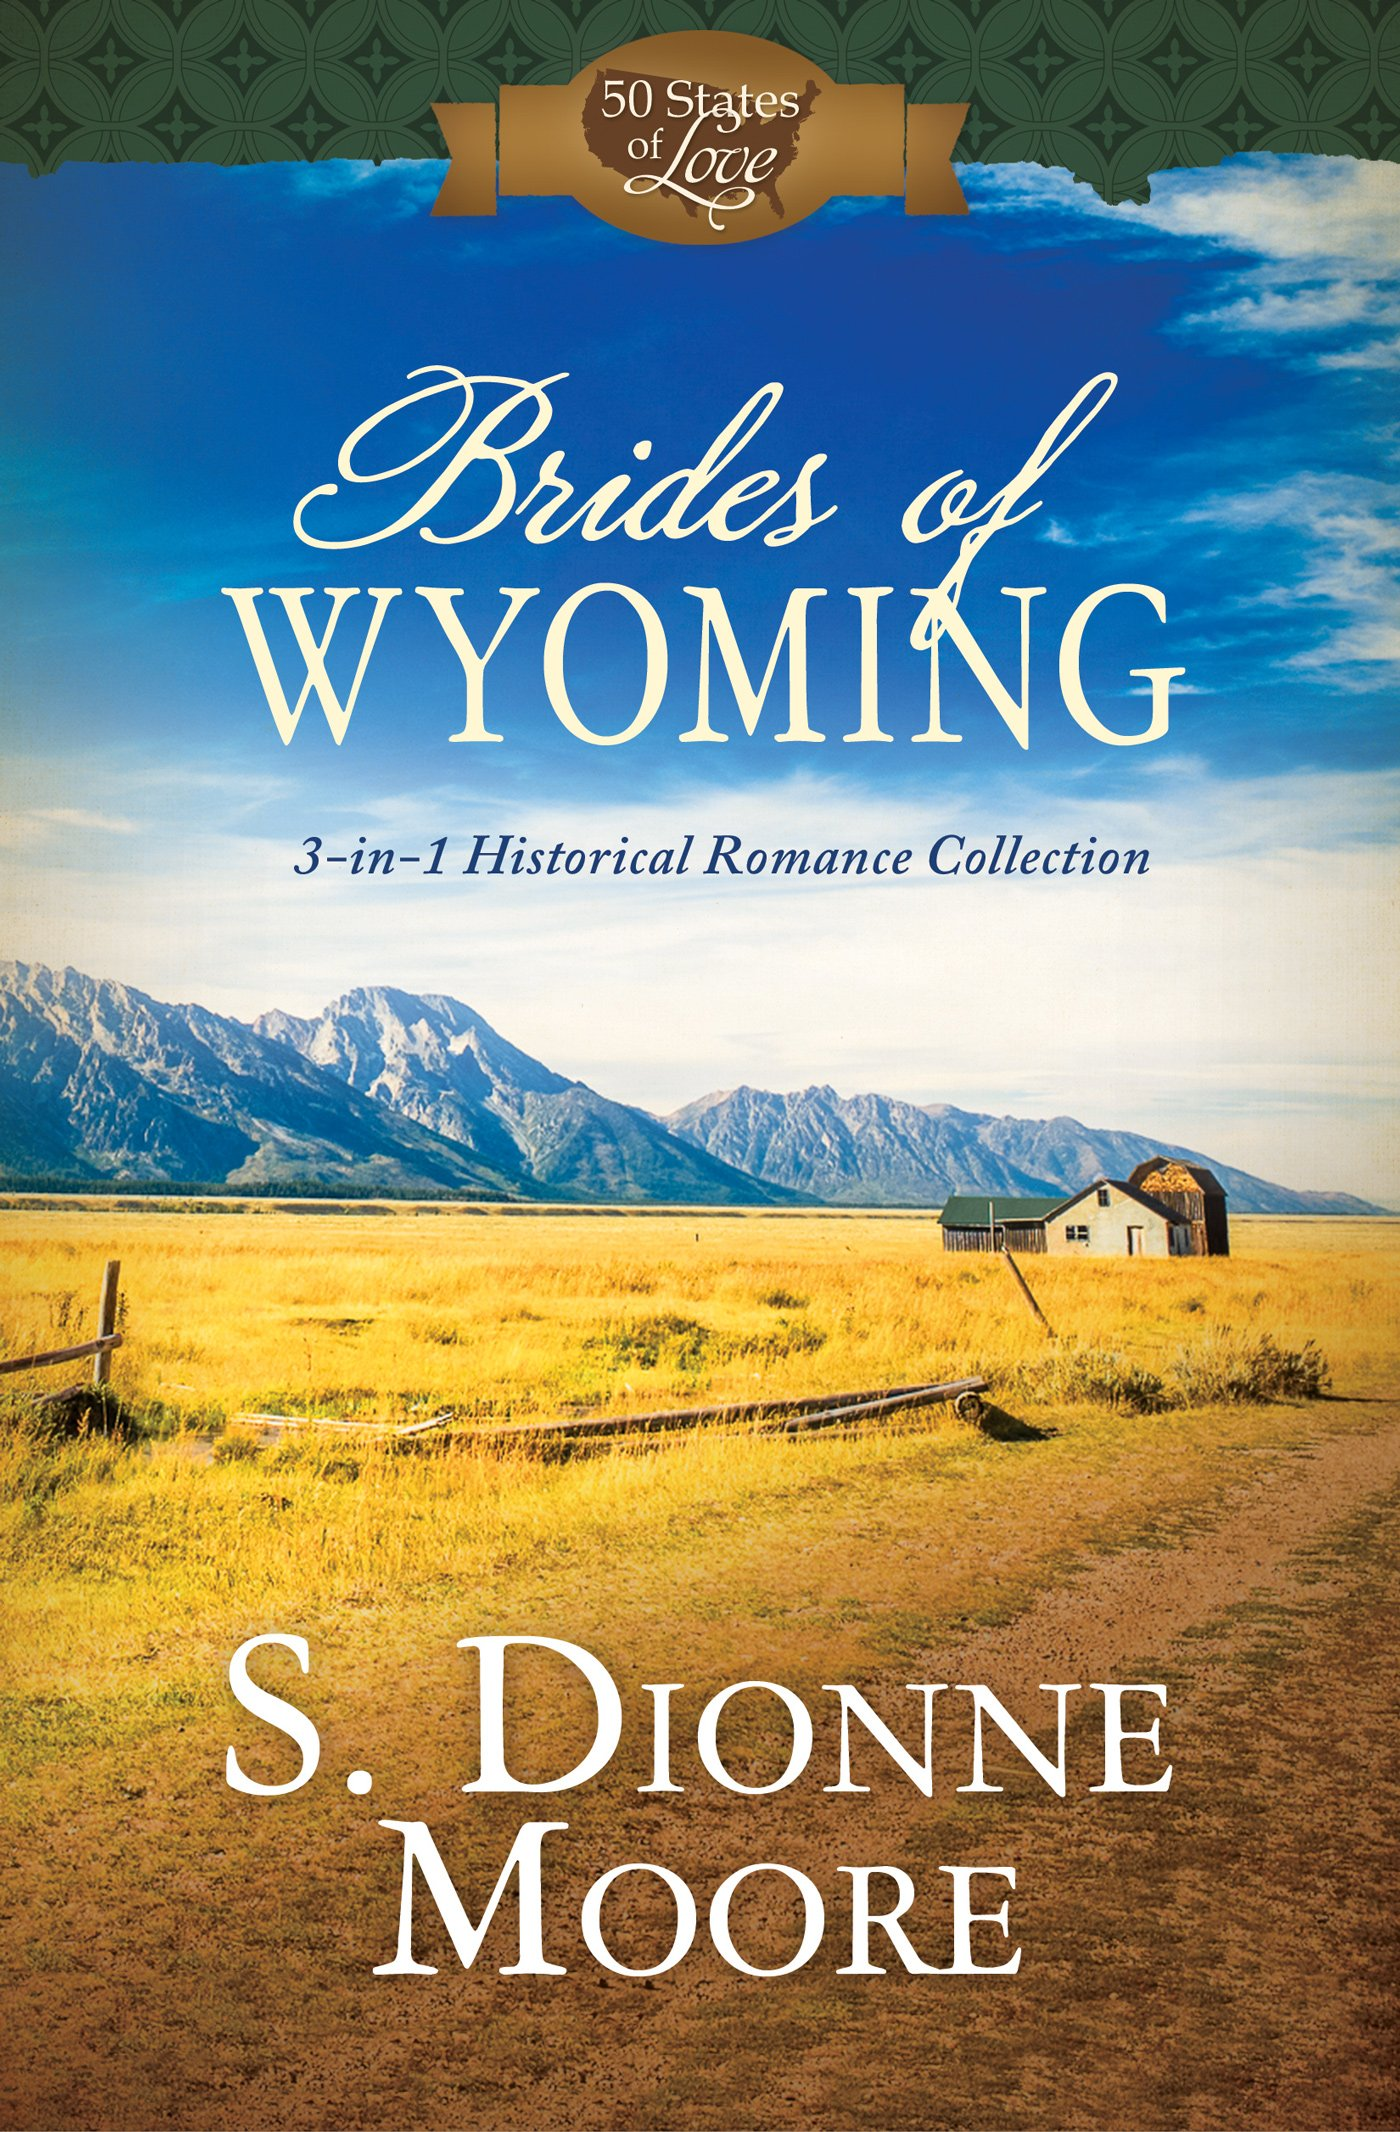 Read Online Brides of Wyoming: 3-in-1 Historical Romance Collection (50 States of Love) ebook